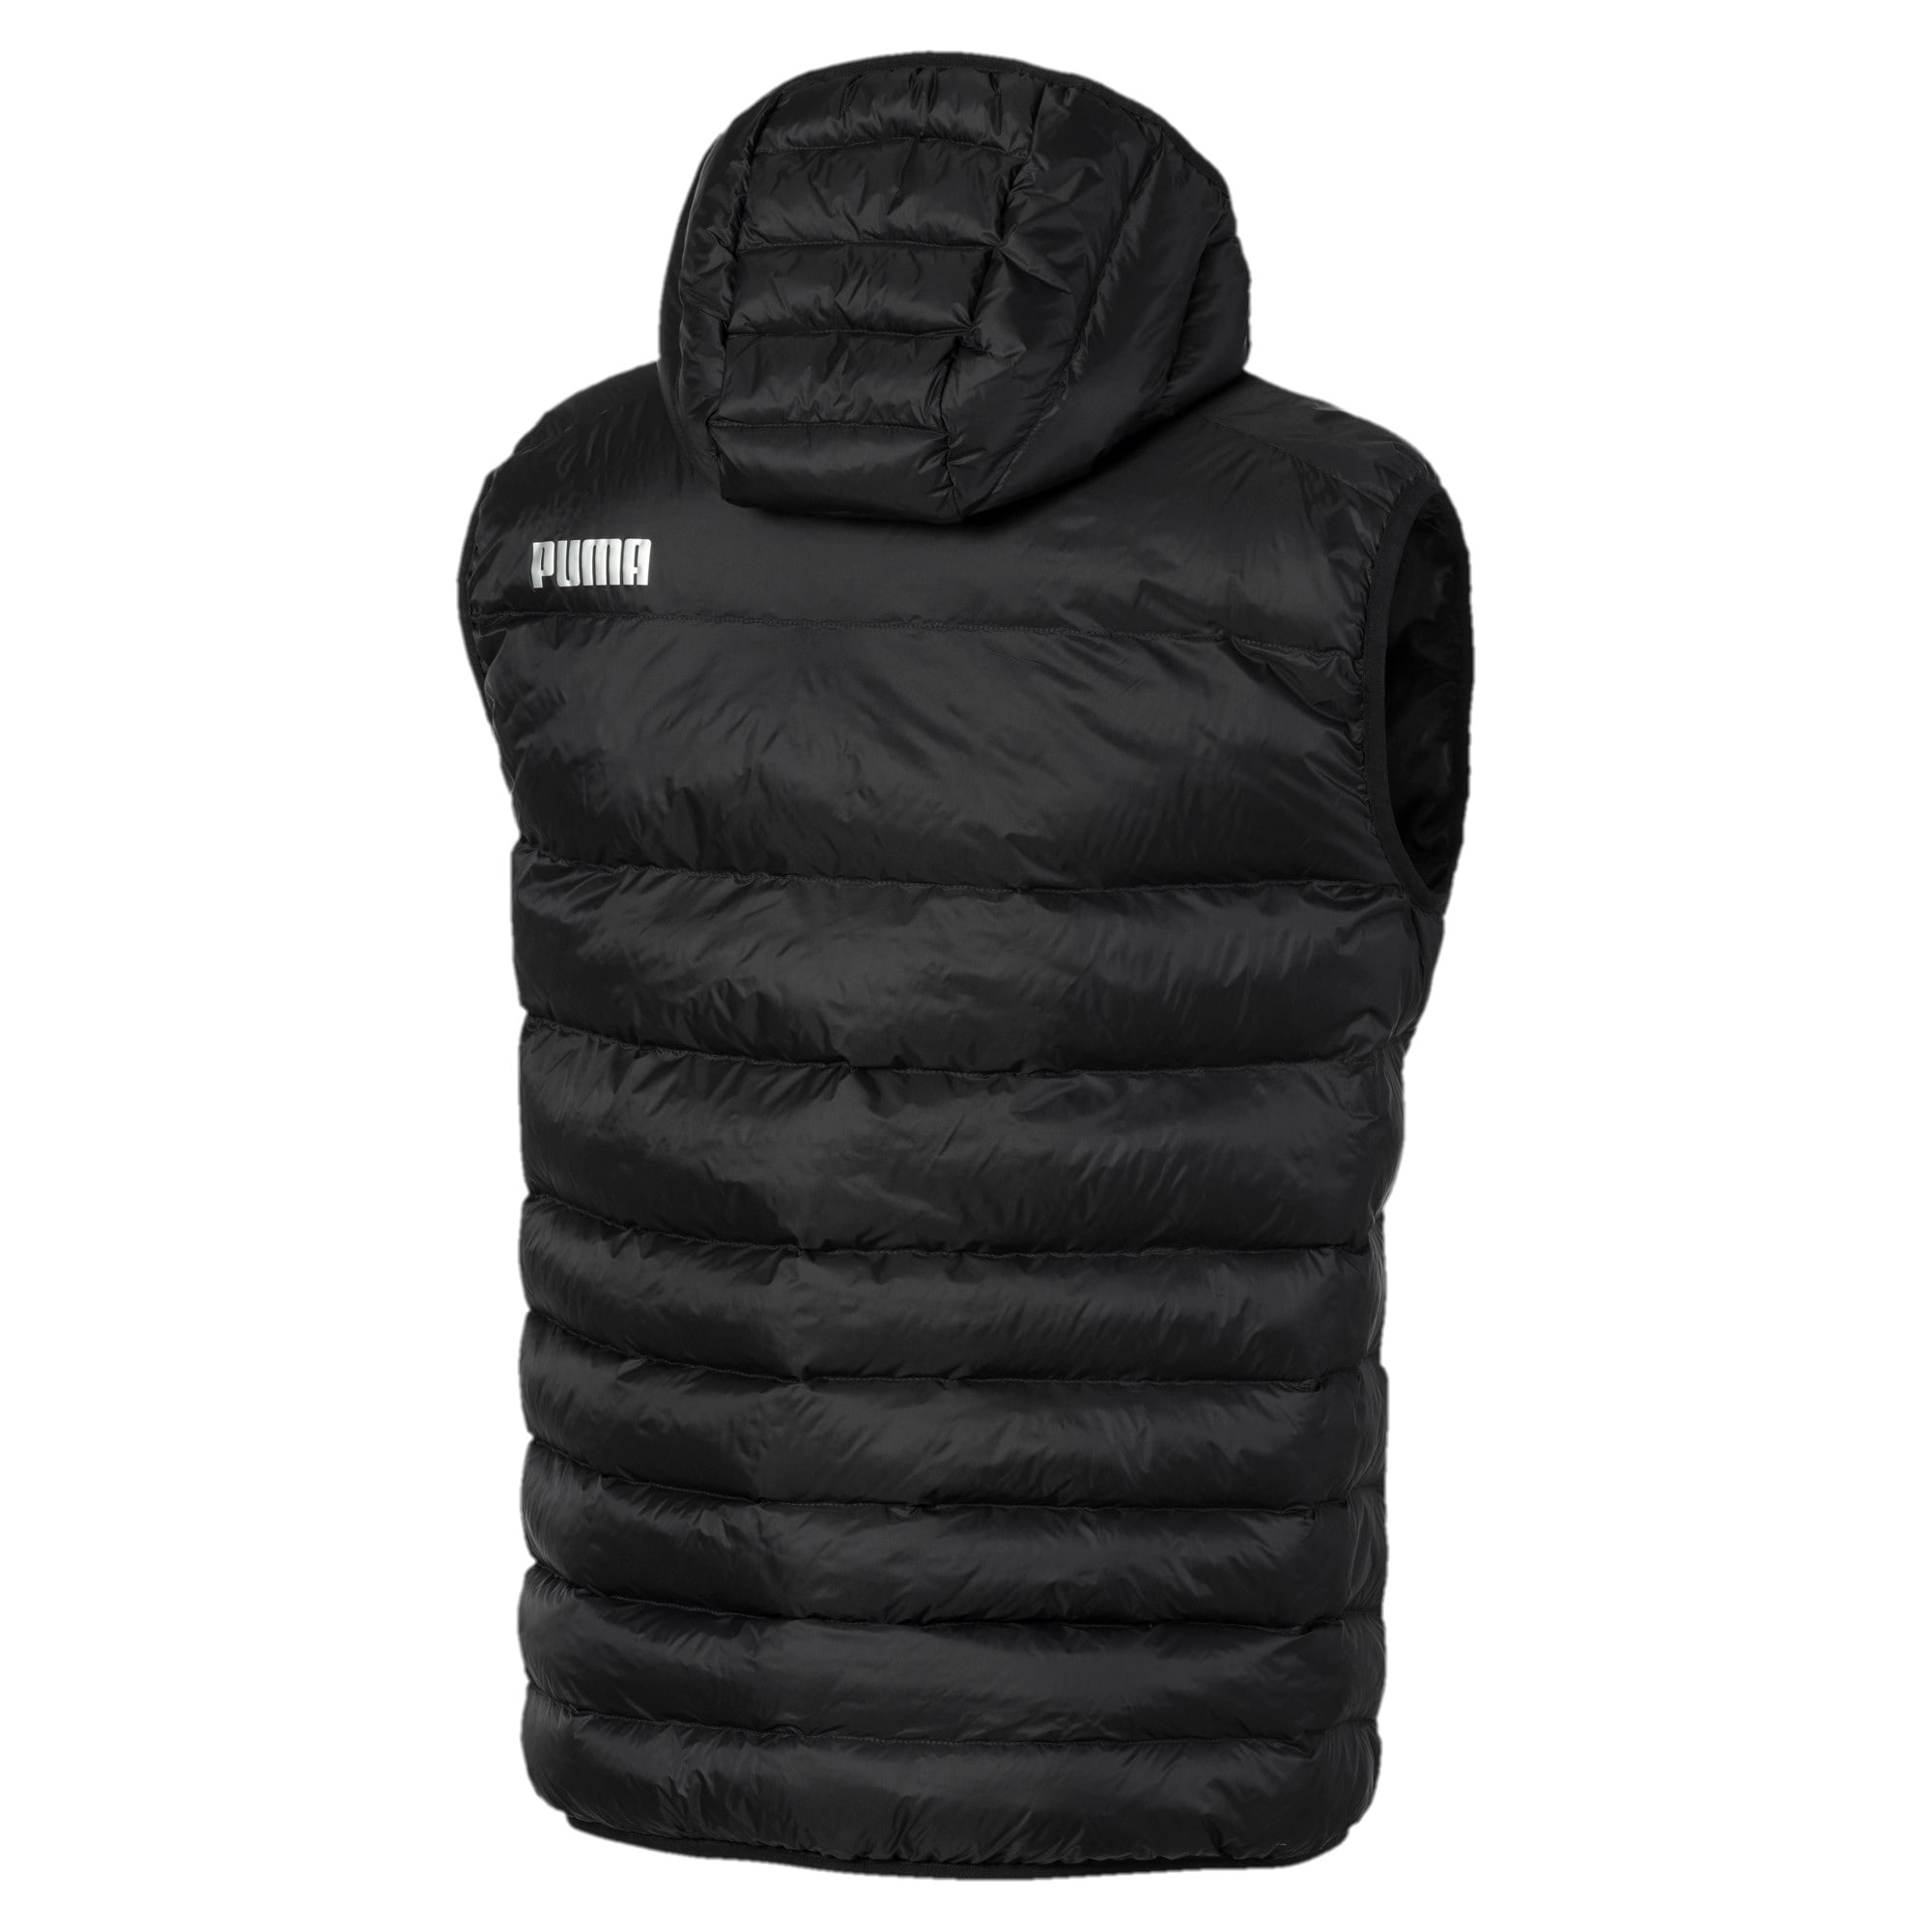 Thumbnail 5 of warmCELL Ultralight Men's Vest, Puma Black, medium